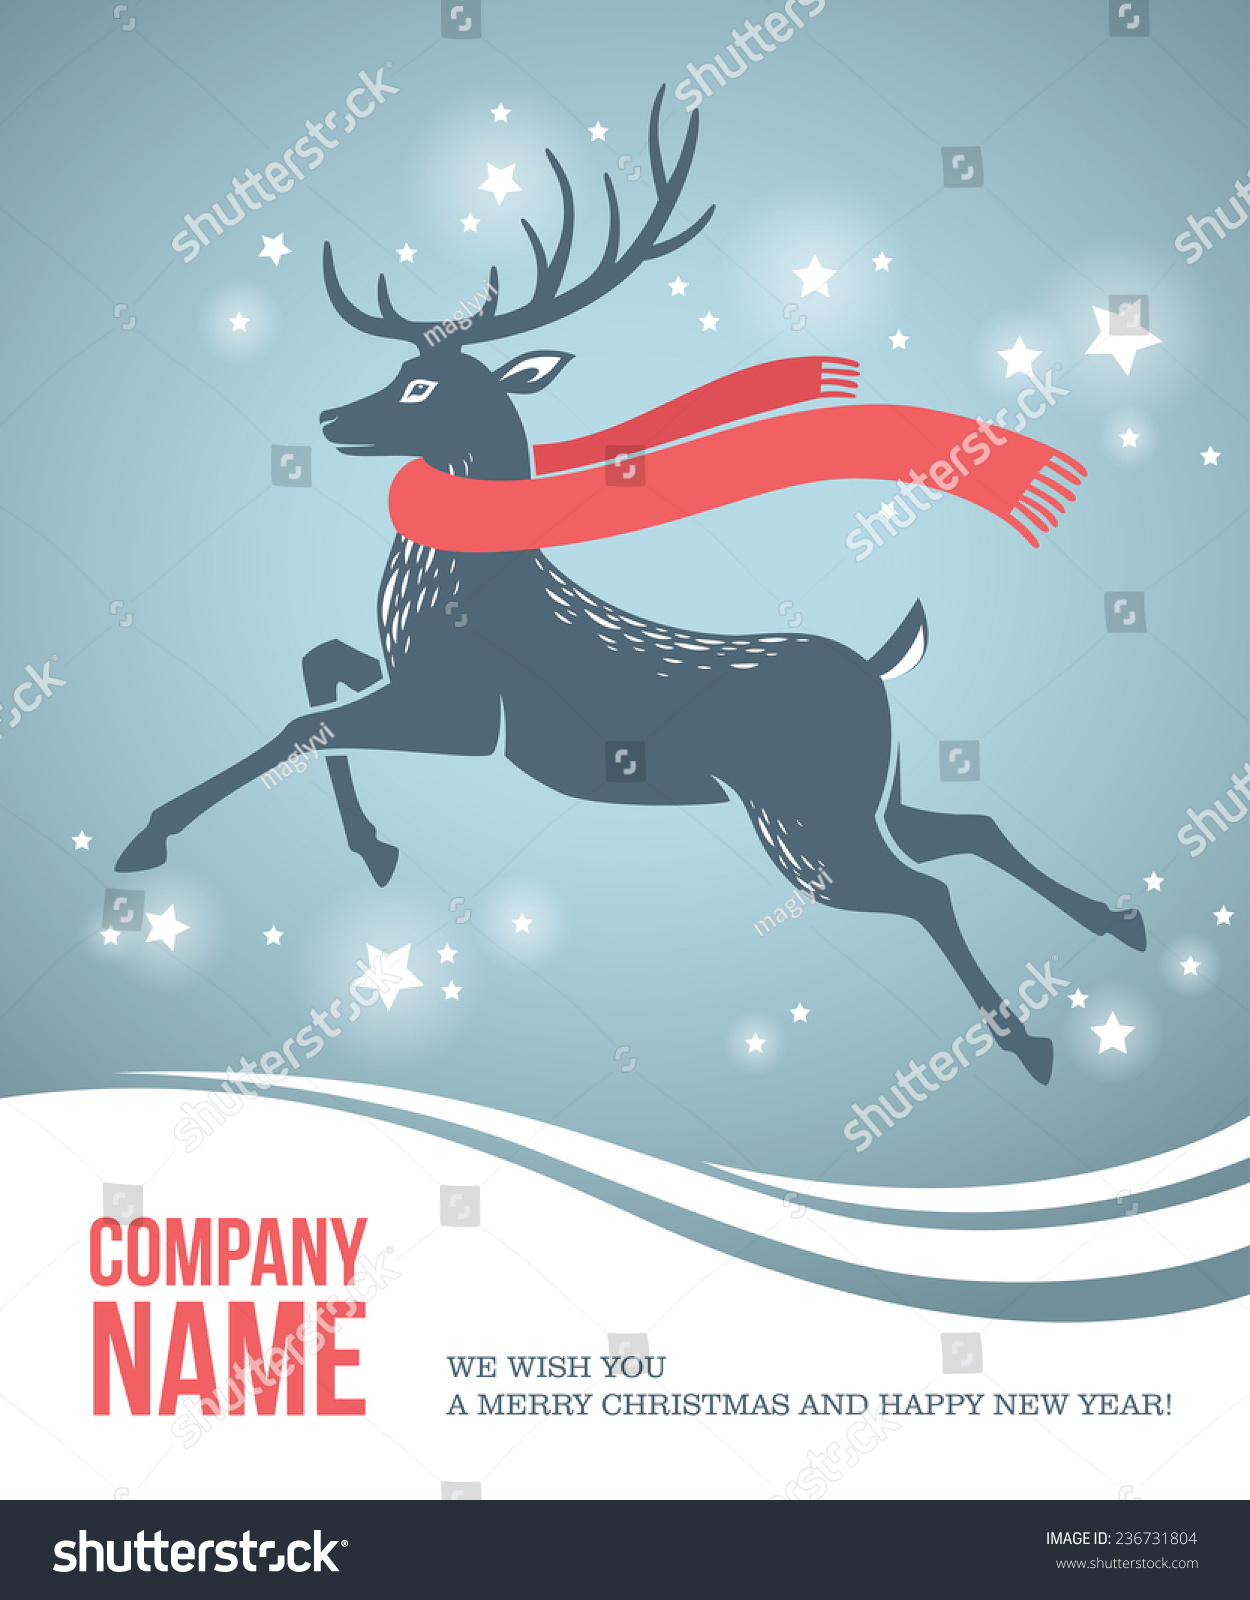 Corporate Christmas Card Blue Deer Red Stock Vector (Royalty Free ...